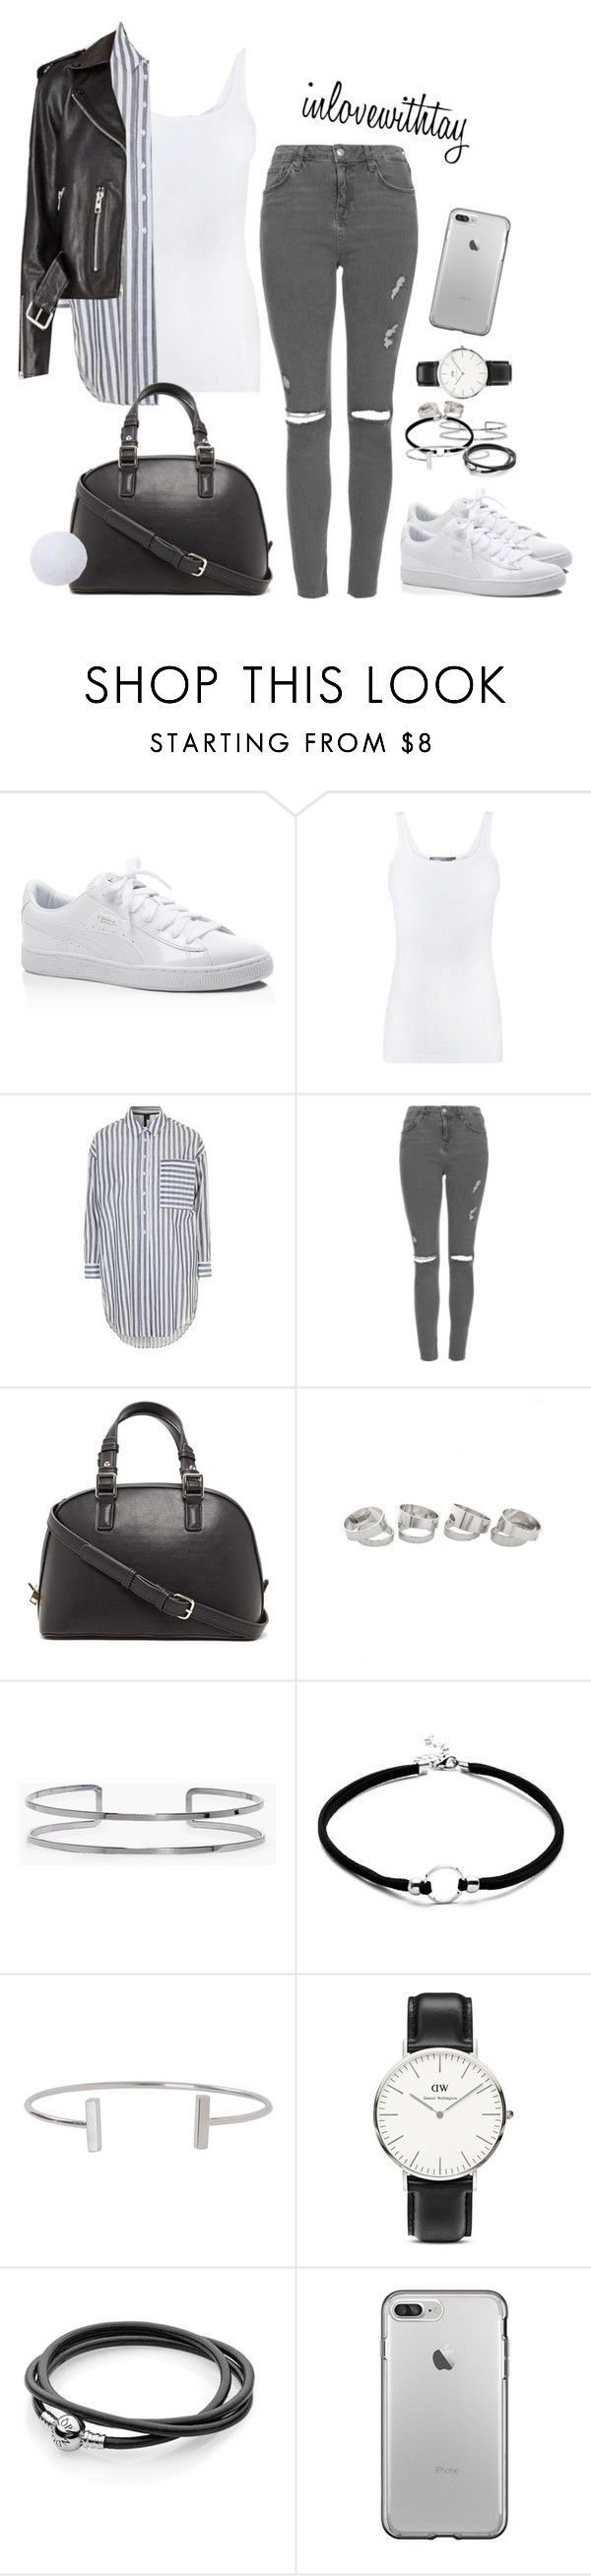 15❤ by inlovewithtay on Polyvore featuring mode, Vince, Topshop, Puma, Forever 21, Daniel Wellington, Boohoo and Humble Chic